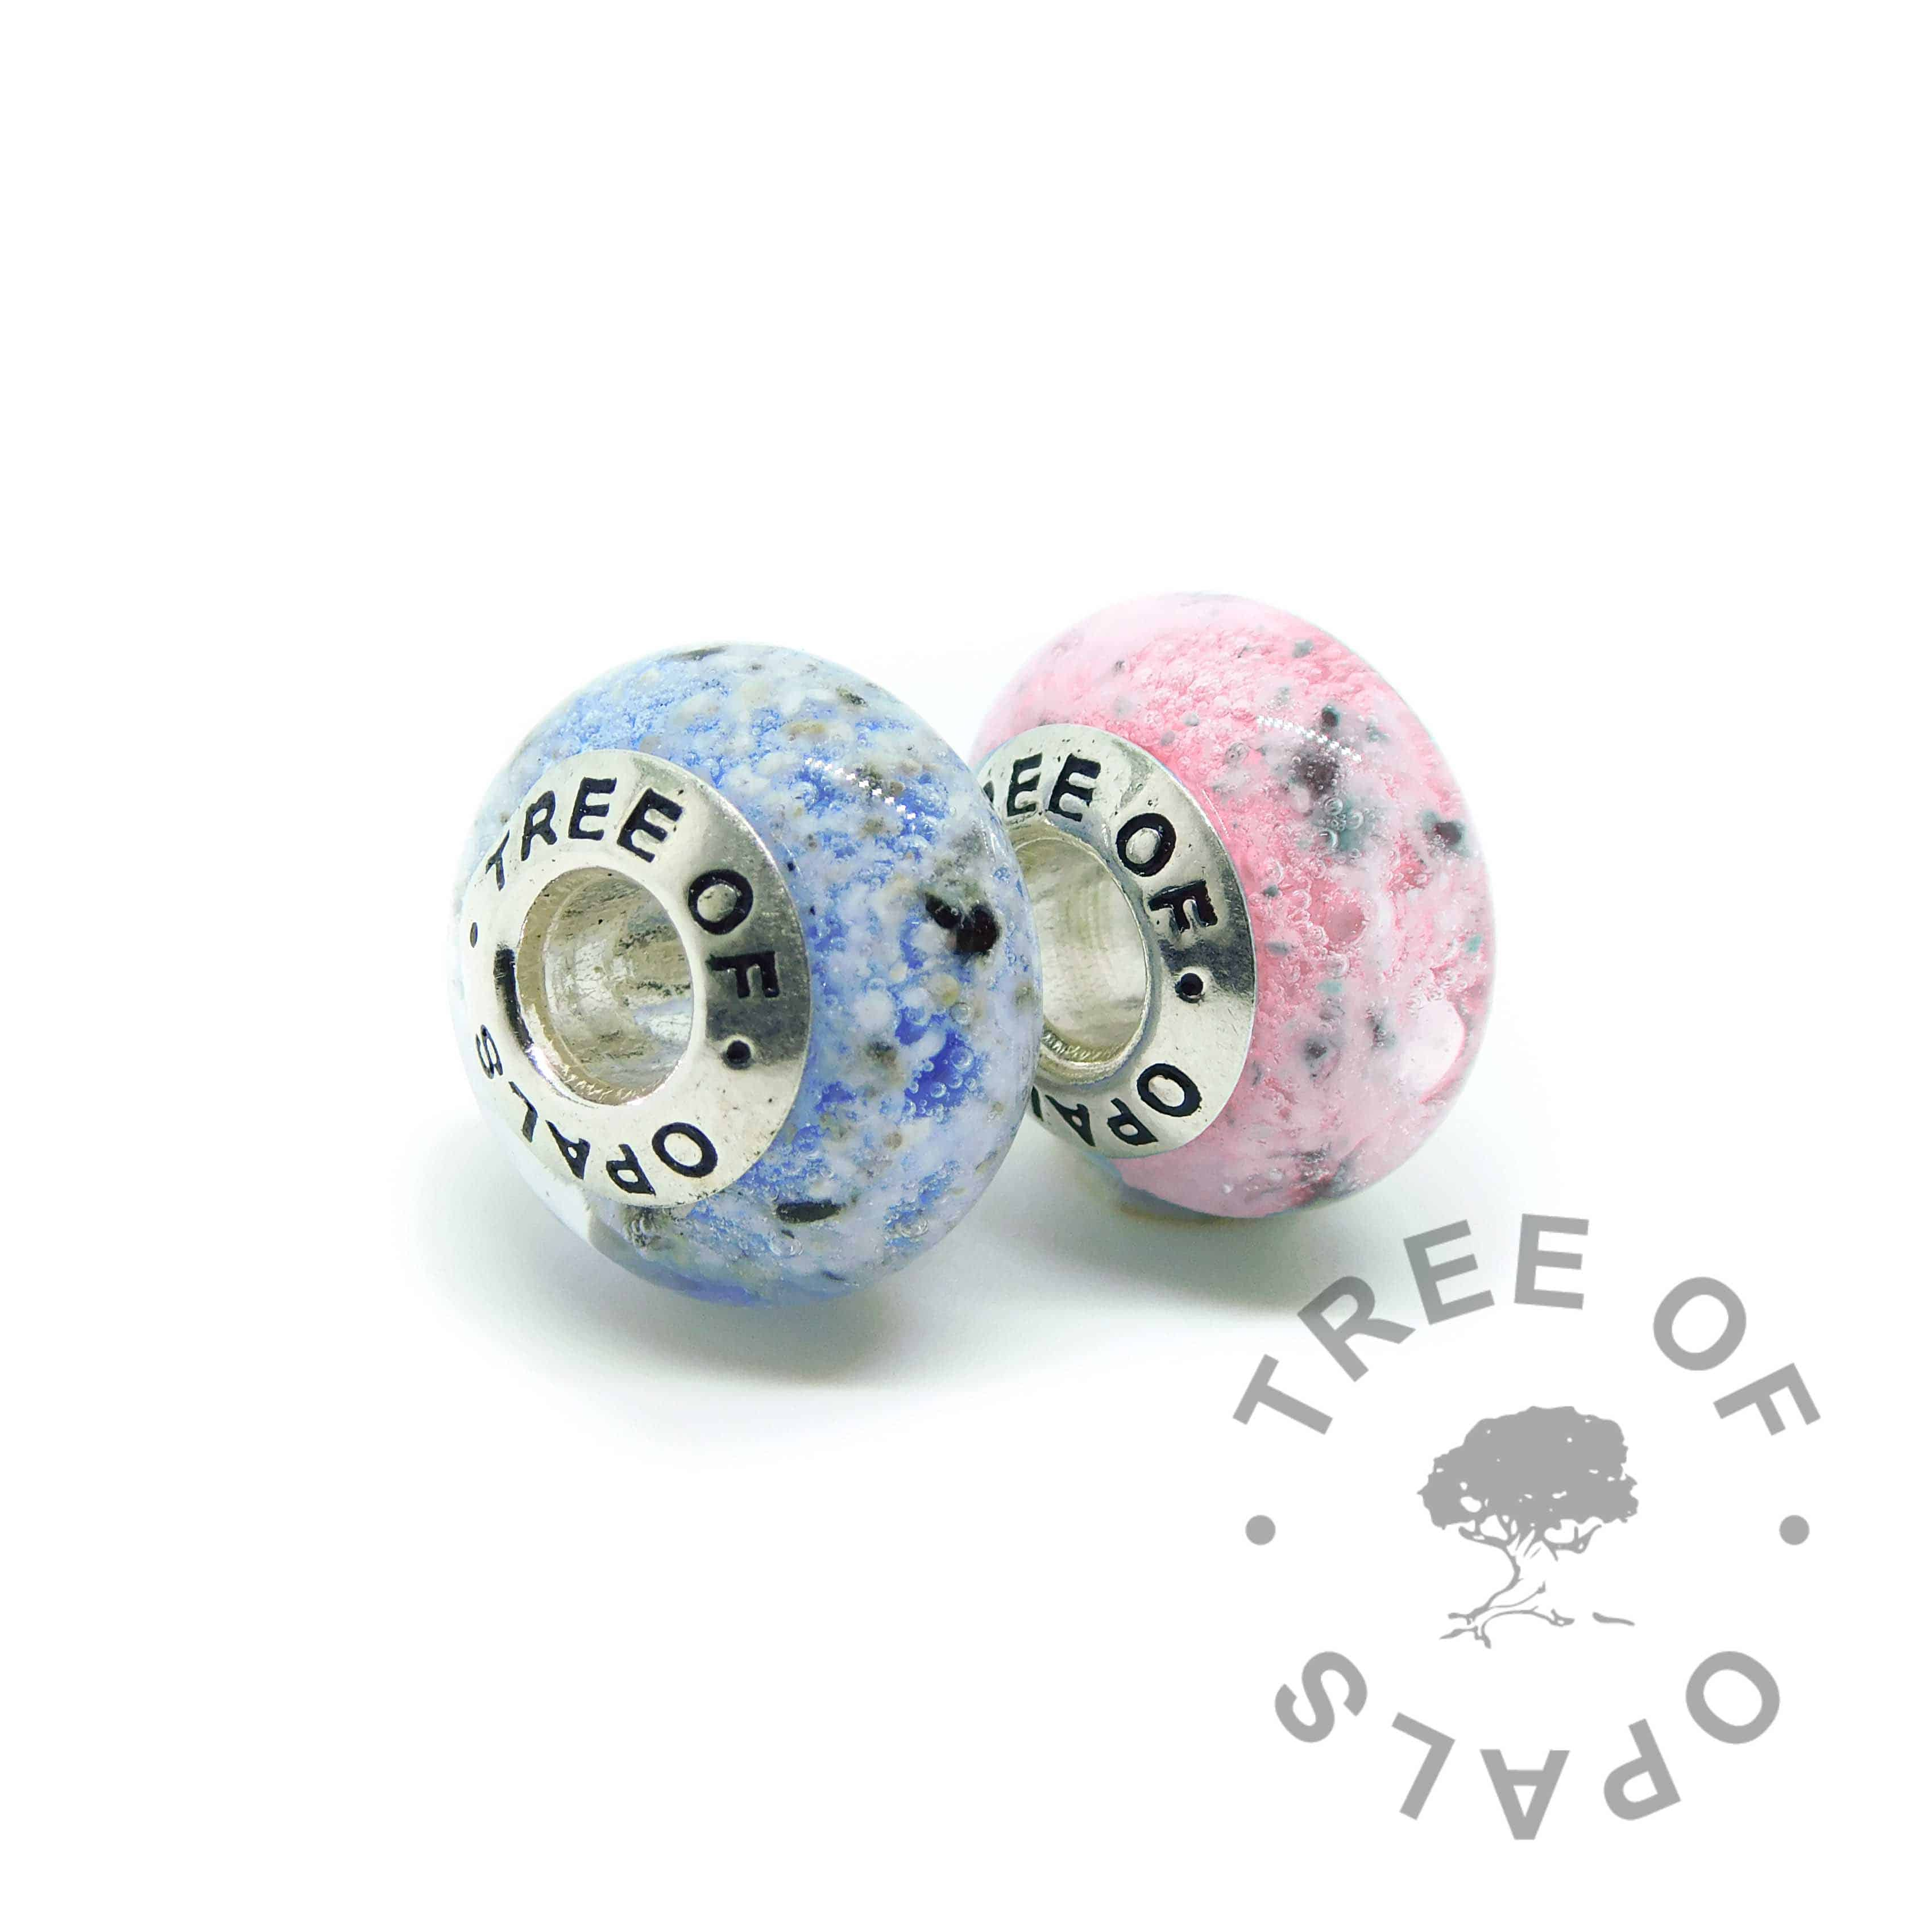 glass ash charm sets duo in blue and pink (colour mockup). Handmade solid sterling silver charm beads for Pandora bracelets, memorial jewellery by Tree of Opals